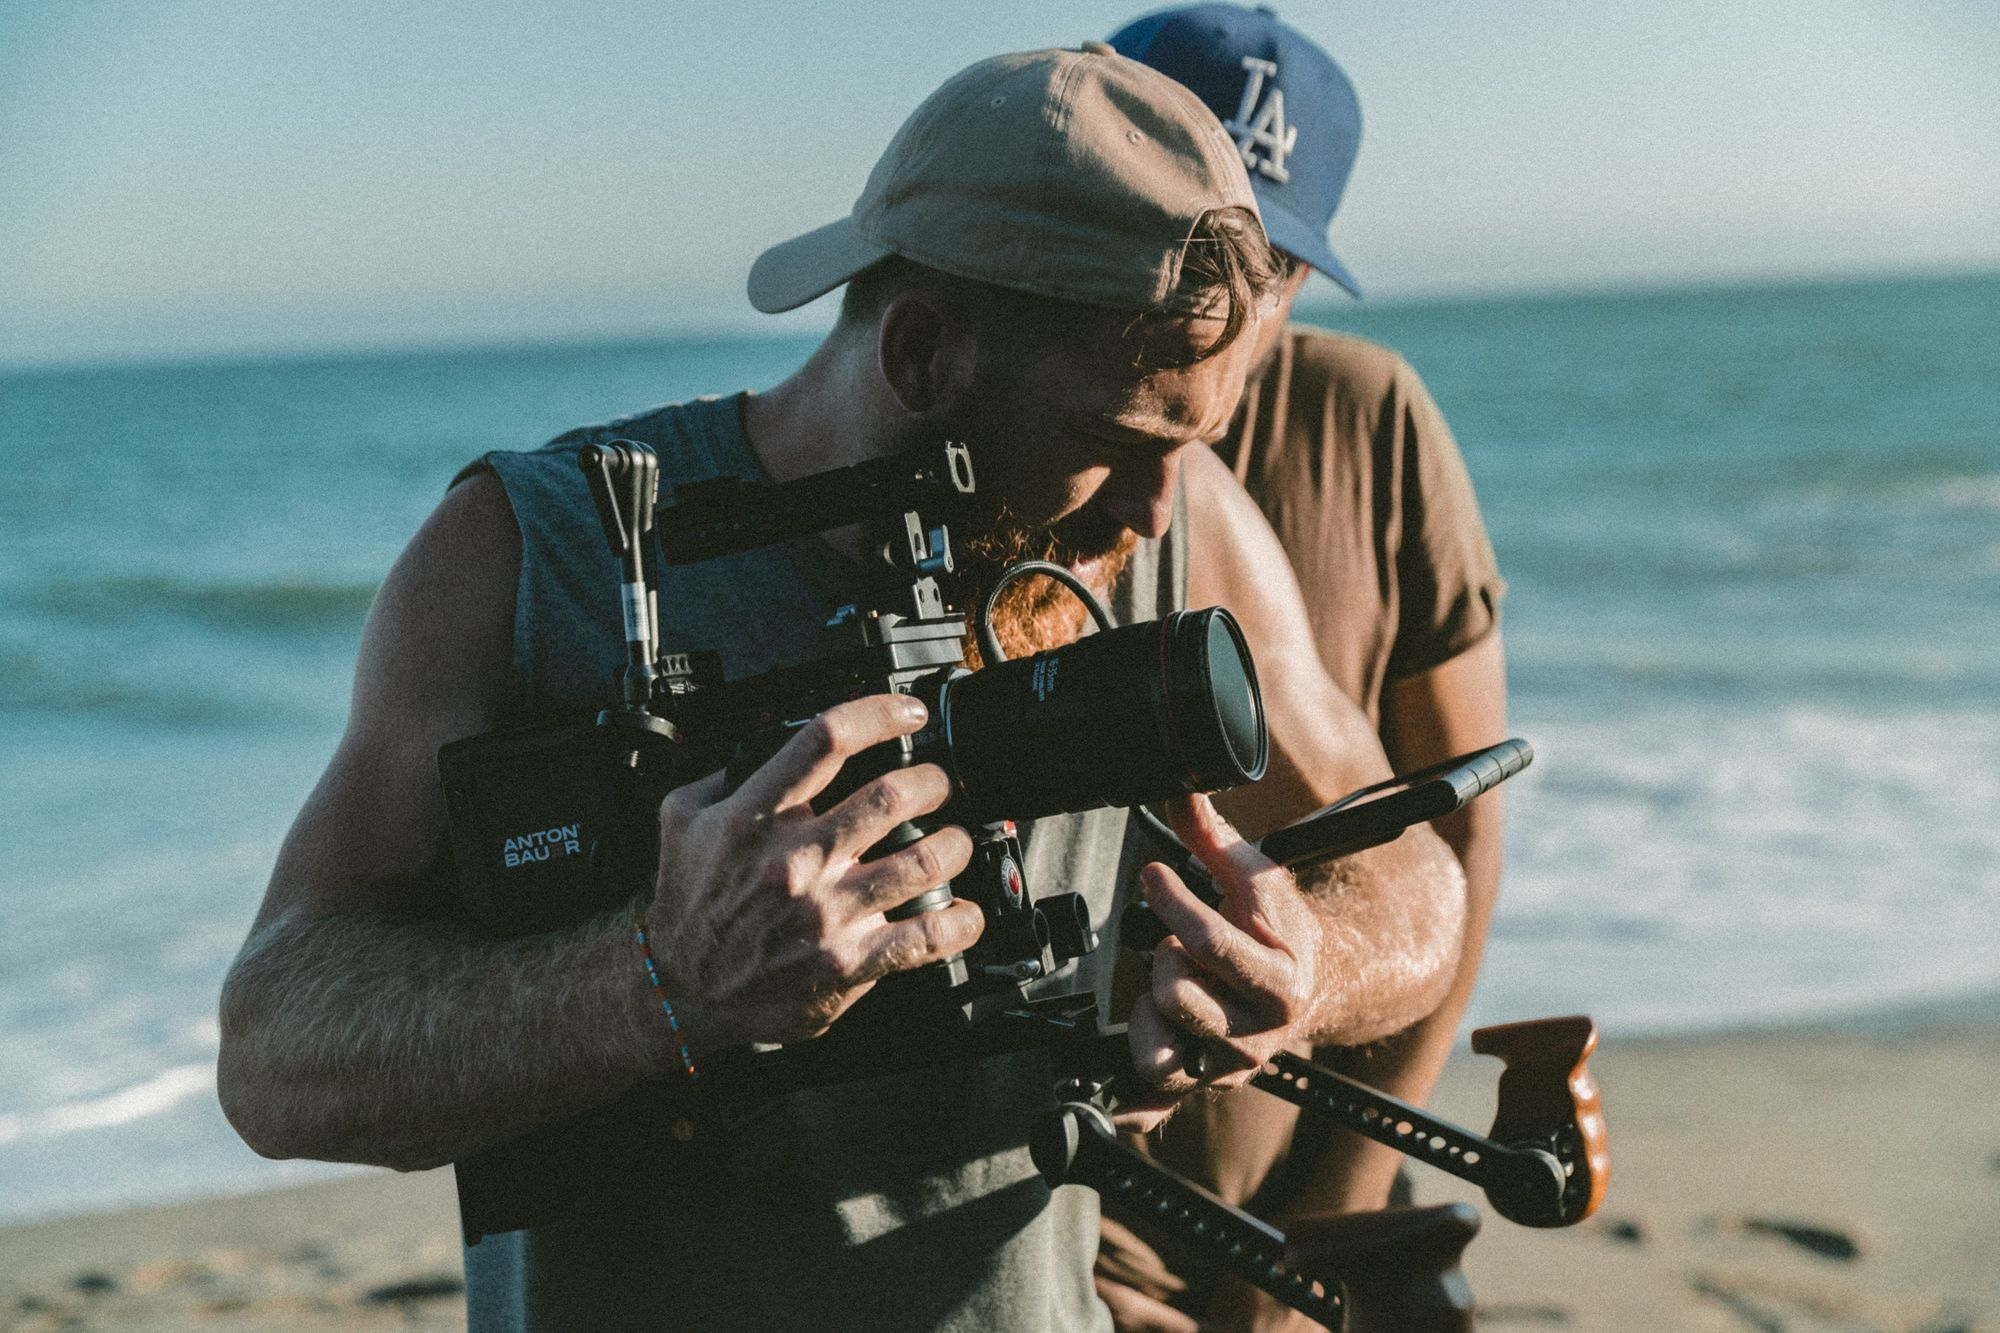 RED cameras are designed for the professional filmmaker